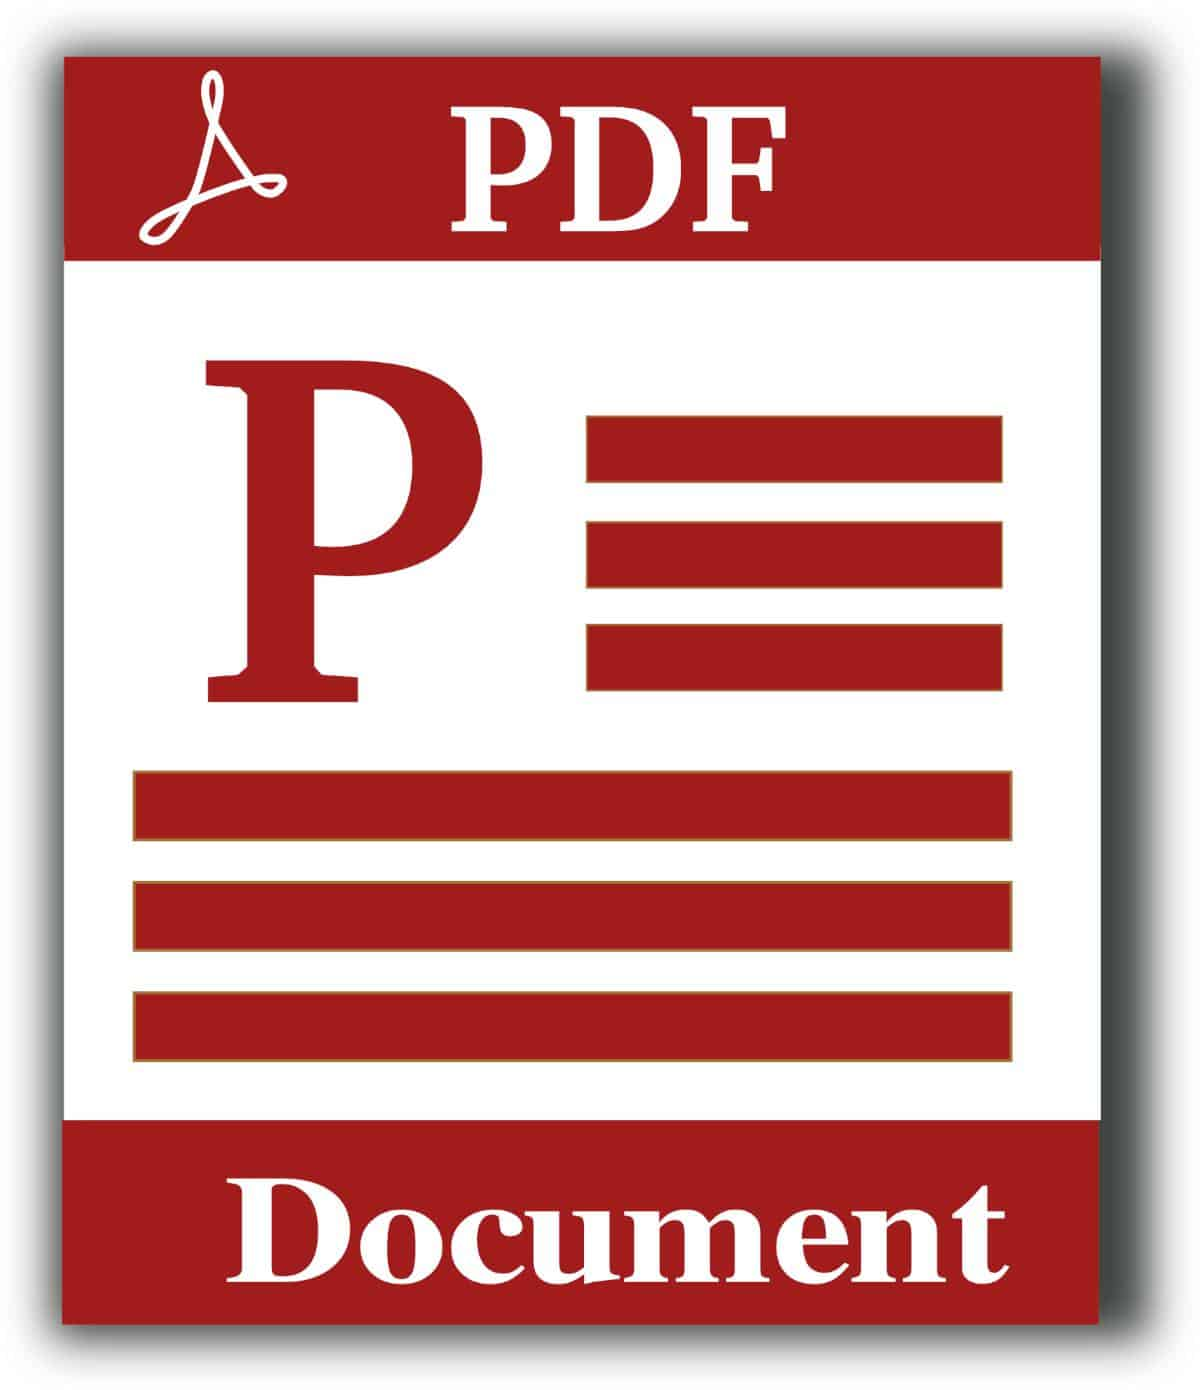 pdf document file   How To Edit PDFs On A Mac And On A PC   how to edit pdfs   Windows